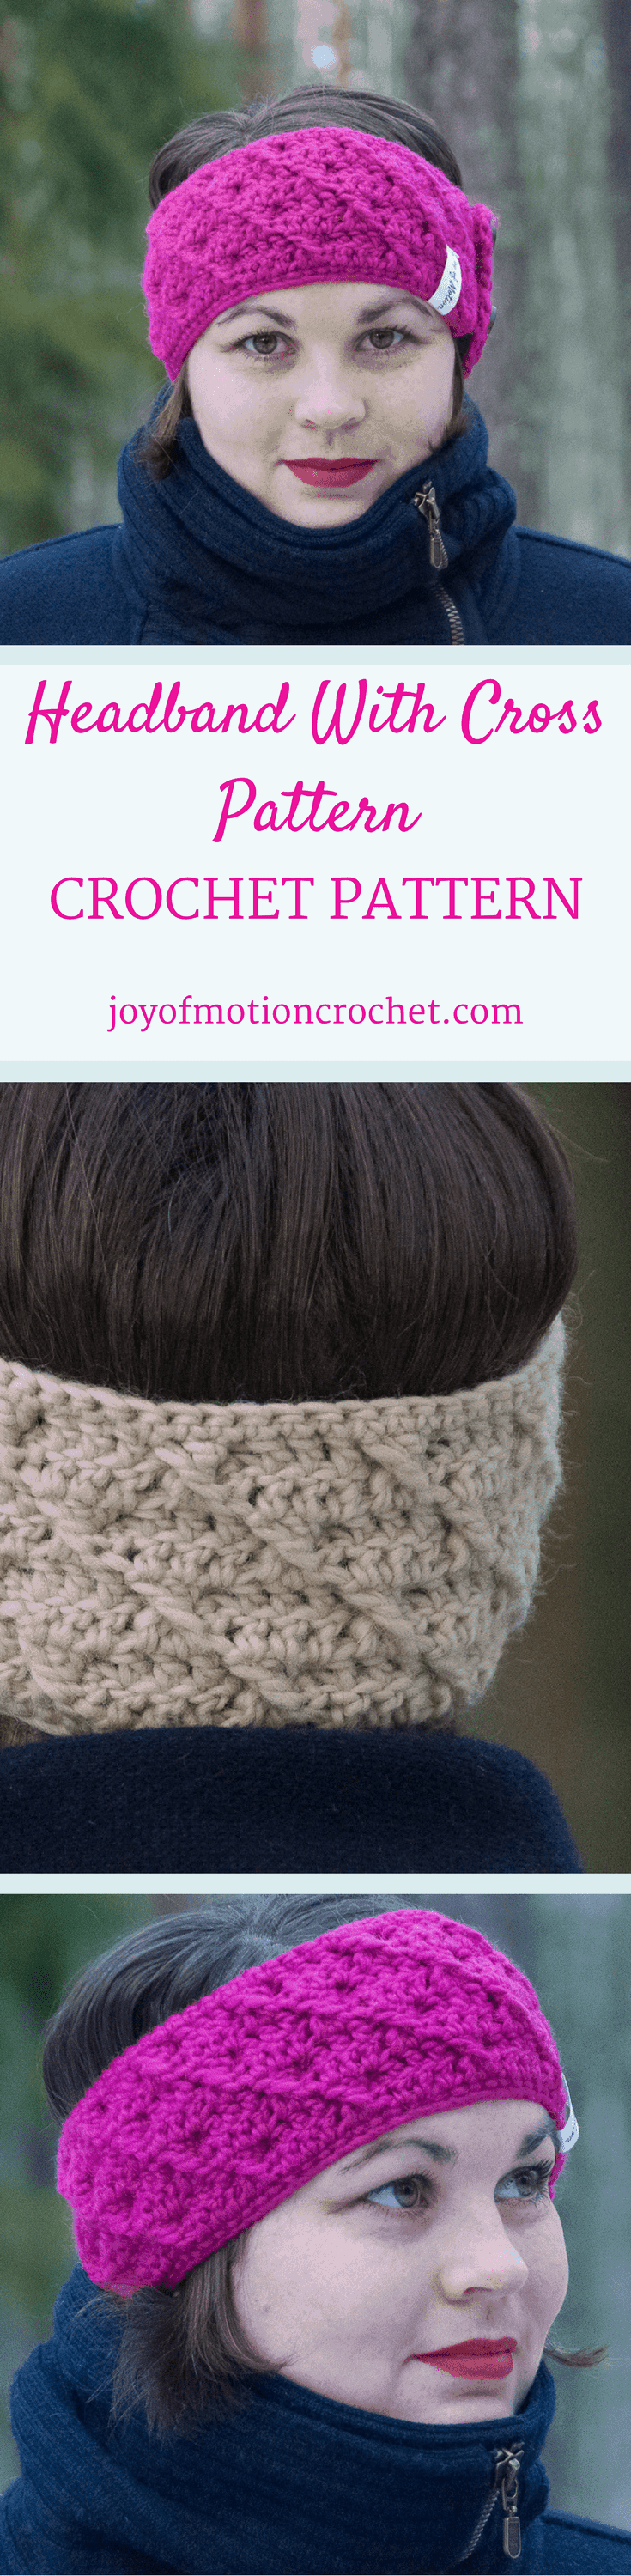 The Headband with cross pattern. Crochet pattern for a warm winter headband.| Headband crochet patterns.. Beanie crochet patterns. Warm crochet pattern. Headband crochet designs. Easy patterns. Winter crochet patterns. Customize crochet pattern headband. Women's crochet pattern headband. Crochet pattern headband. Headband crochet pattern unisex. Click link to learn more.